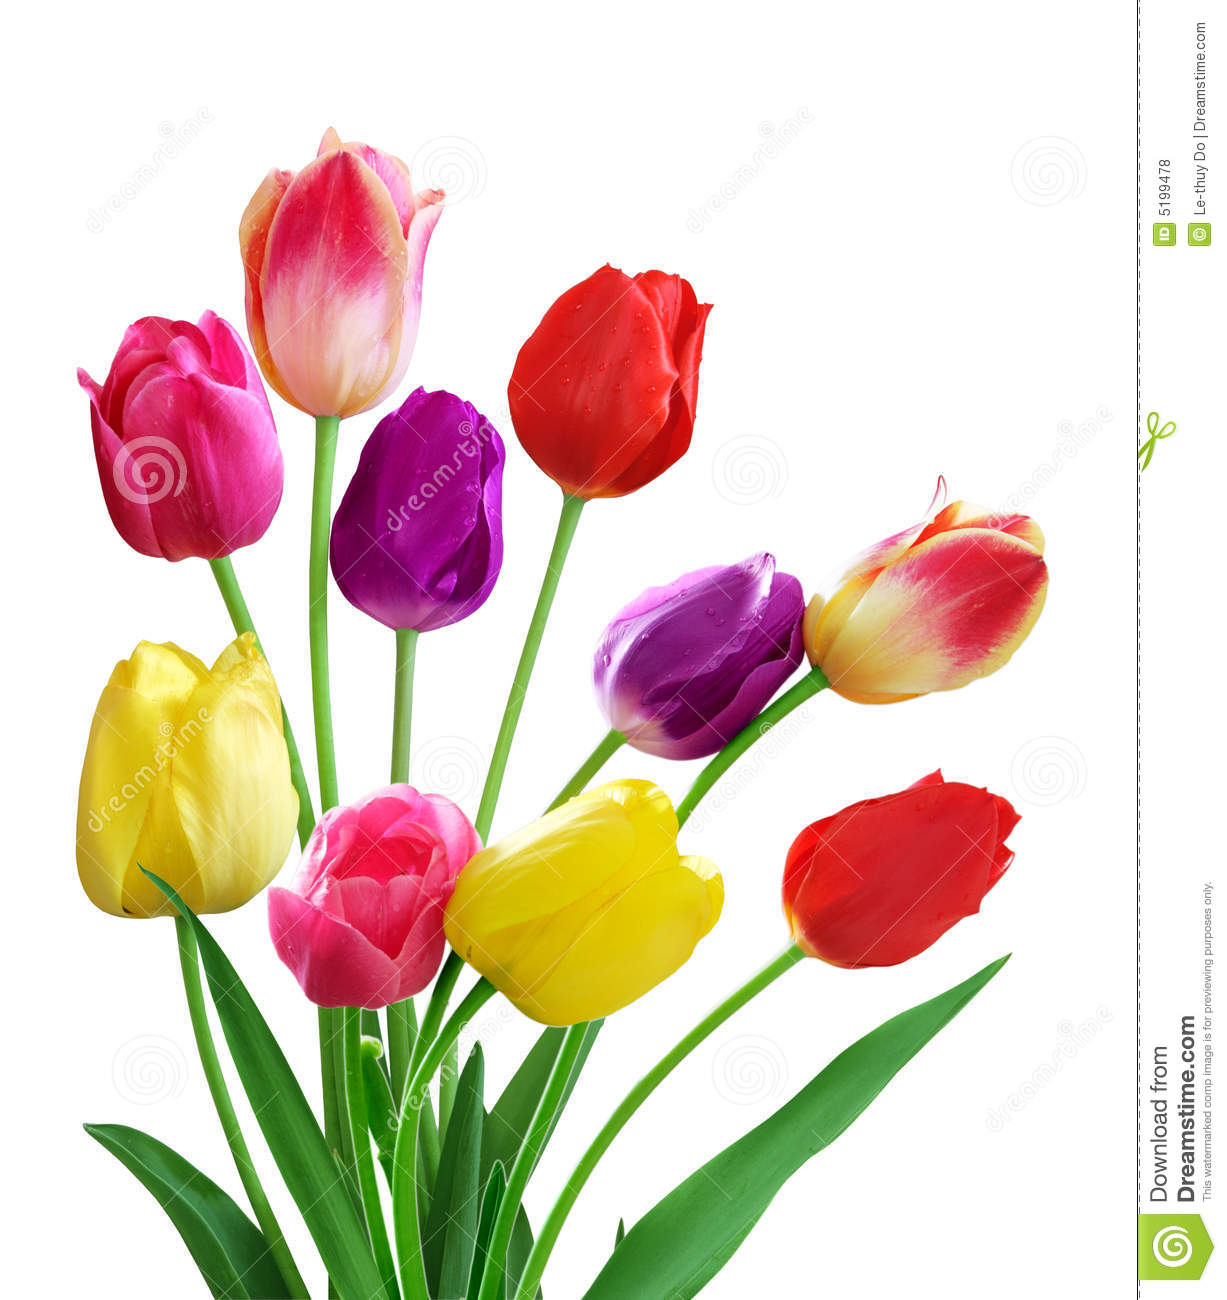 Tulips in different colors isolated on white background.